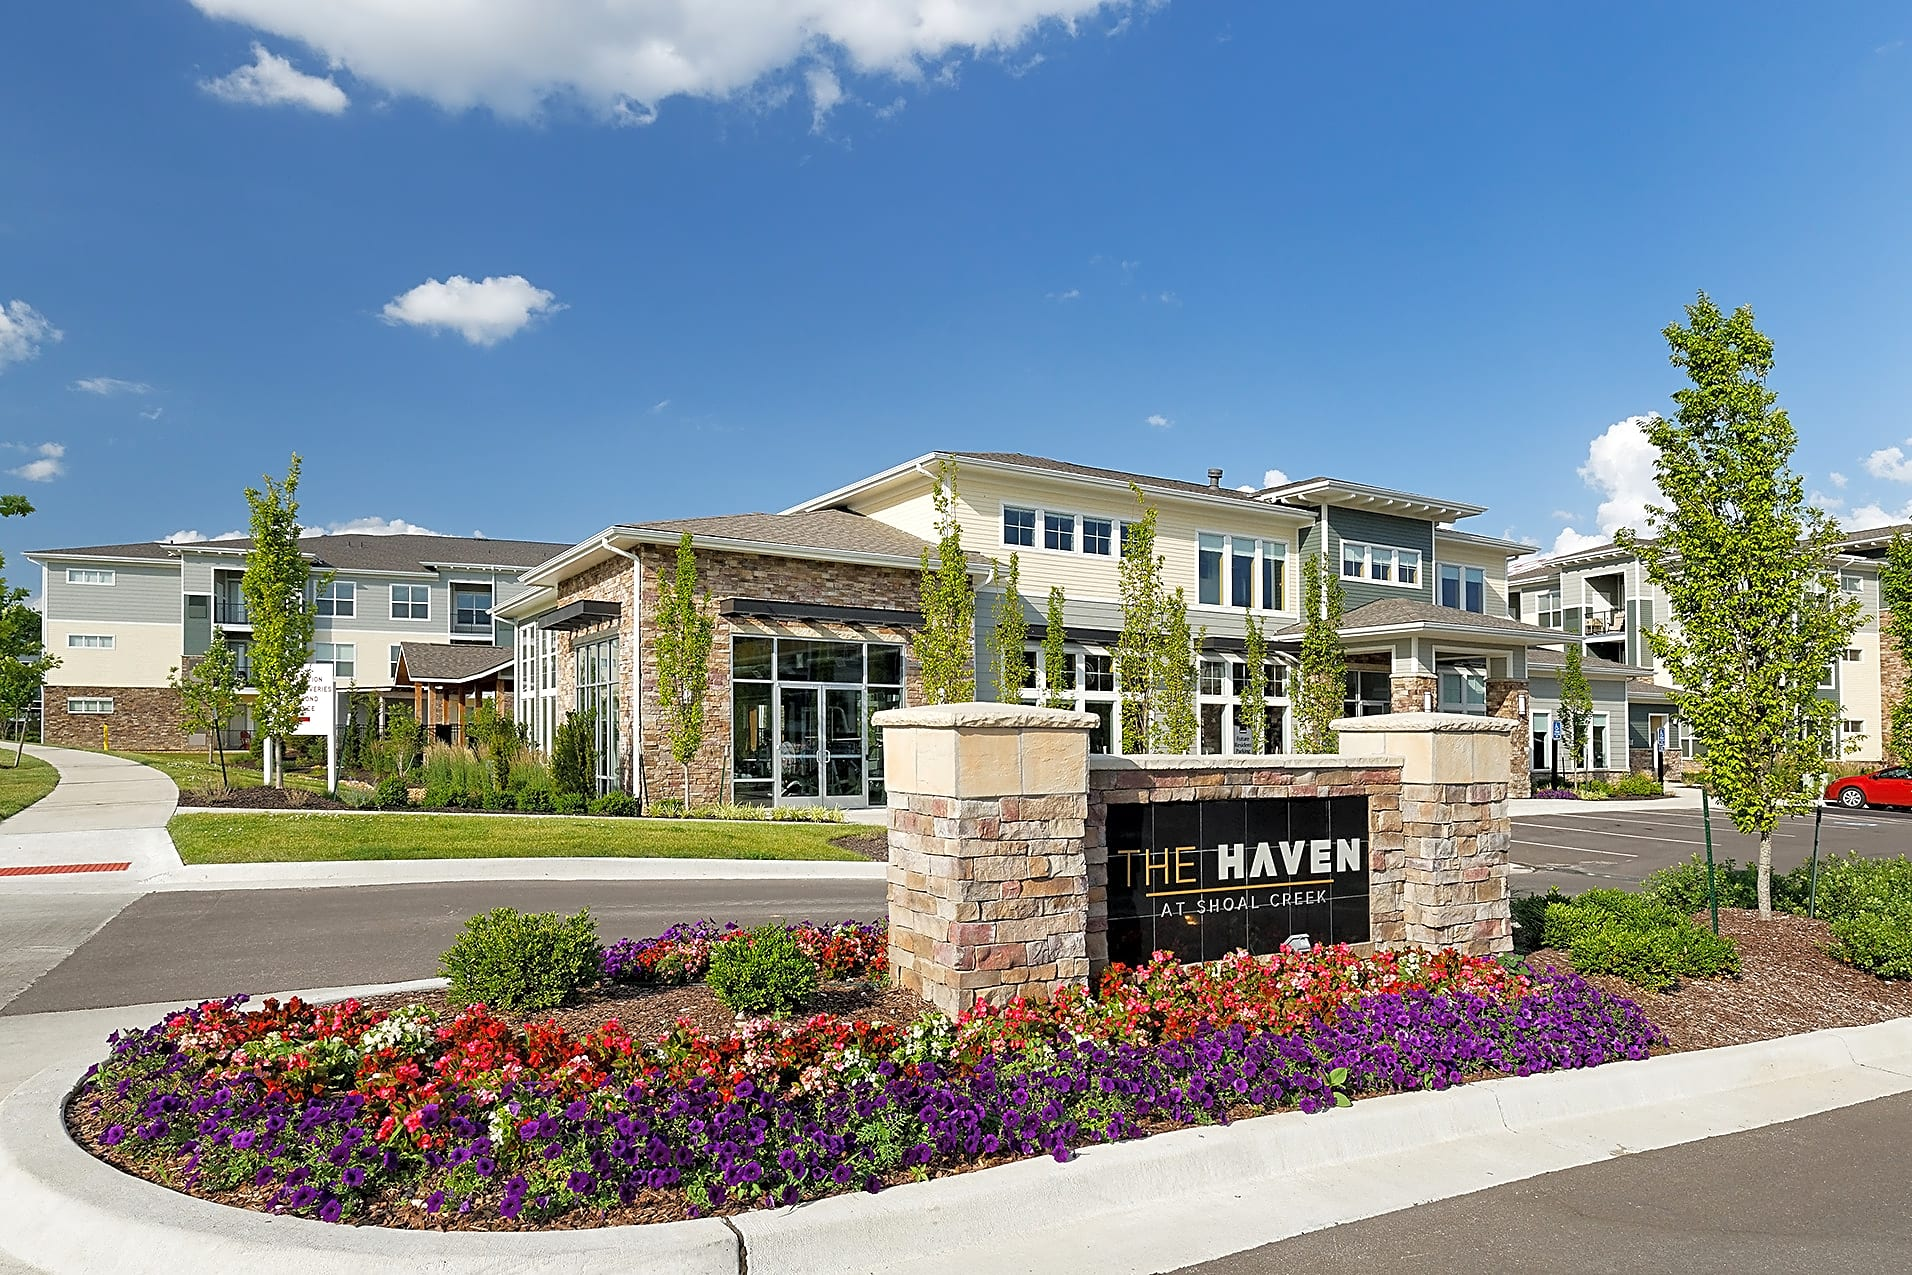 The Haven at Shoal Creek